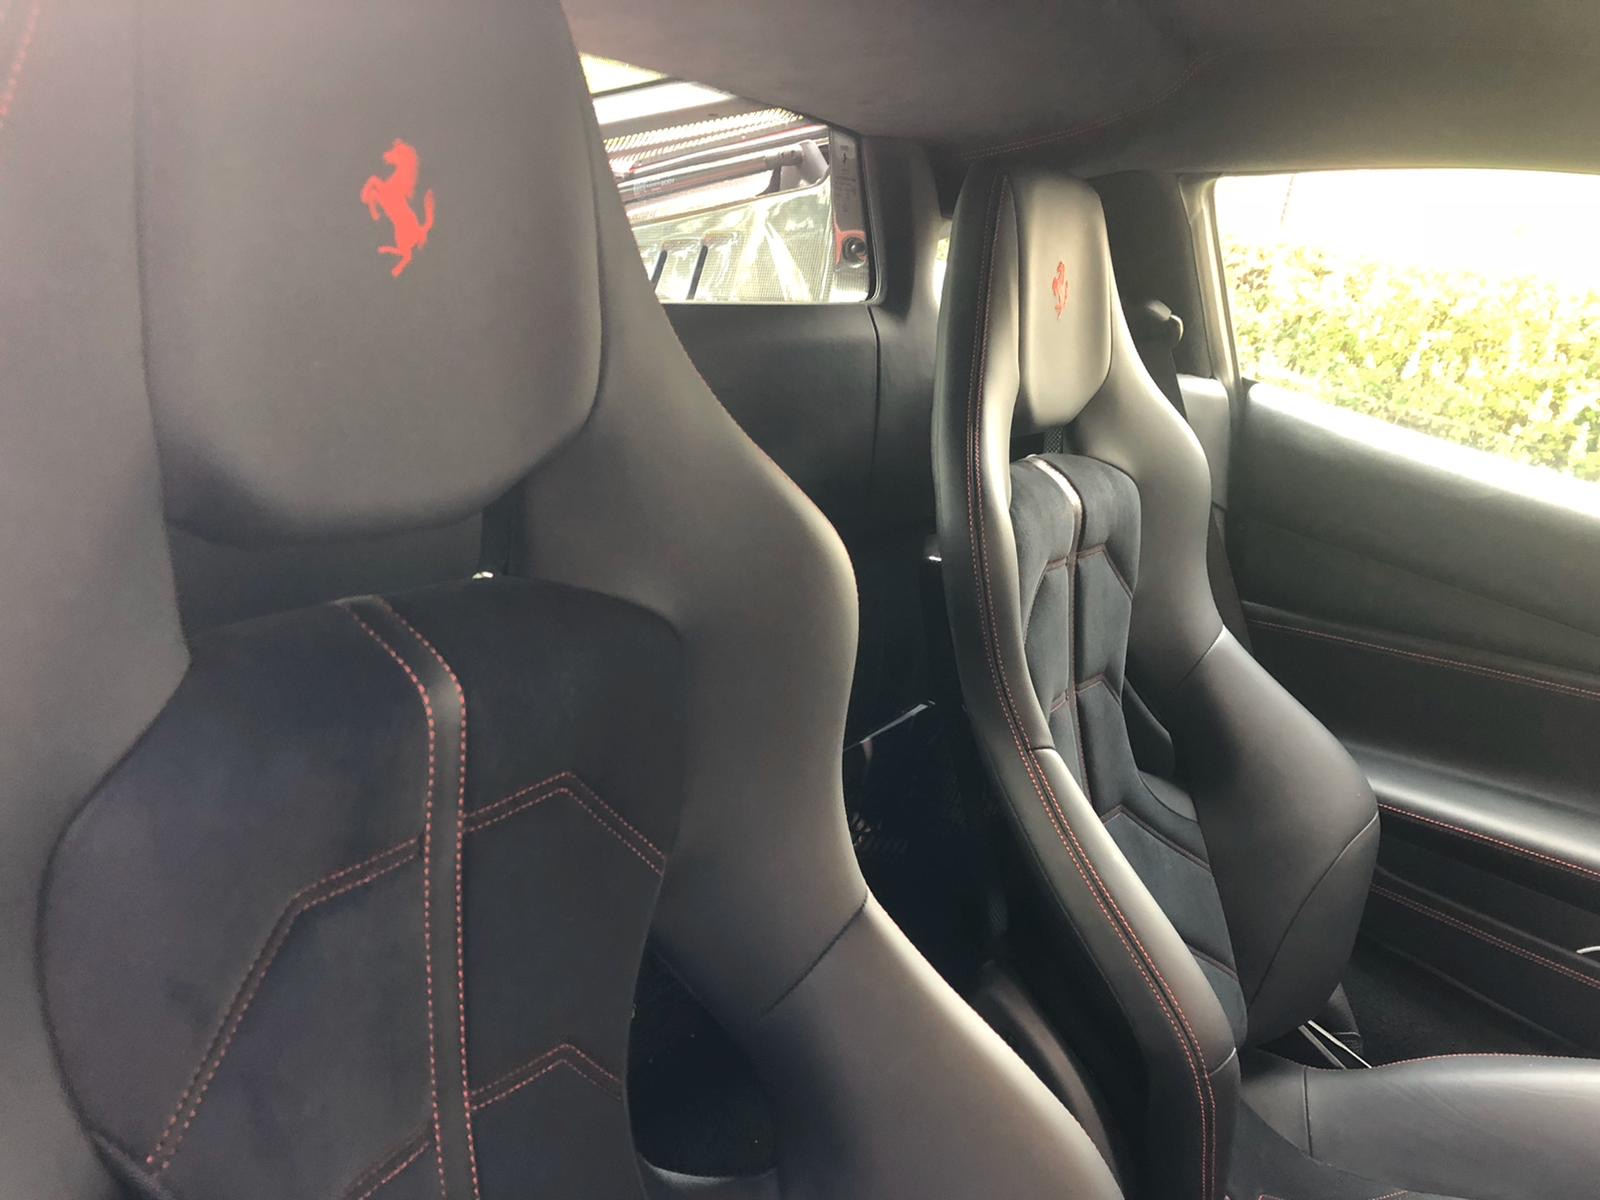 Lot 24 - A 2017 Ferrari 488 GTB Registration number WO17 XWW Unique Rosso Fuoco 3 layer paint First MOT due